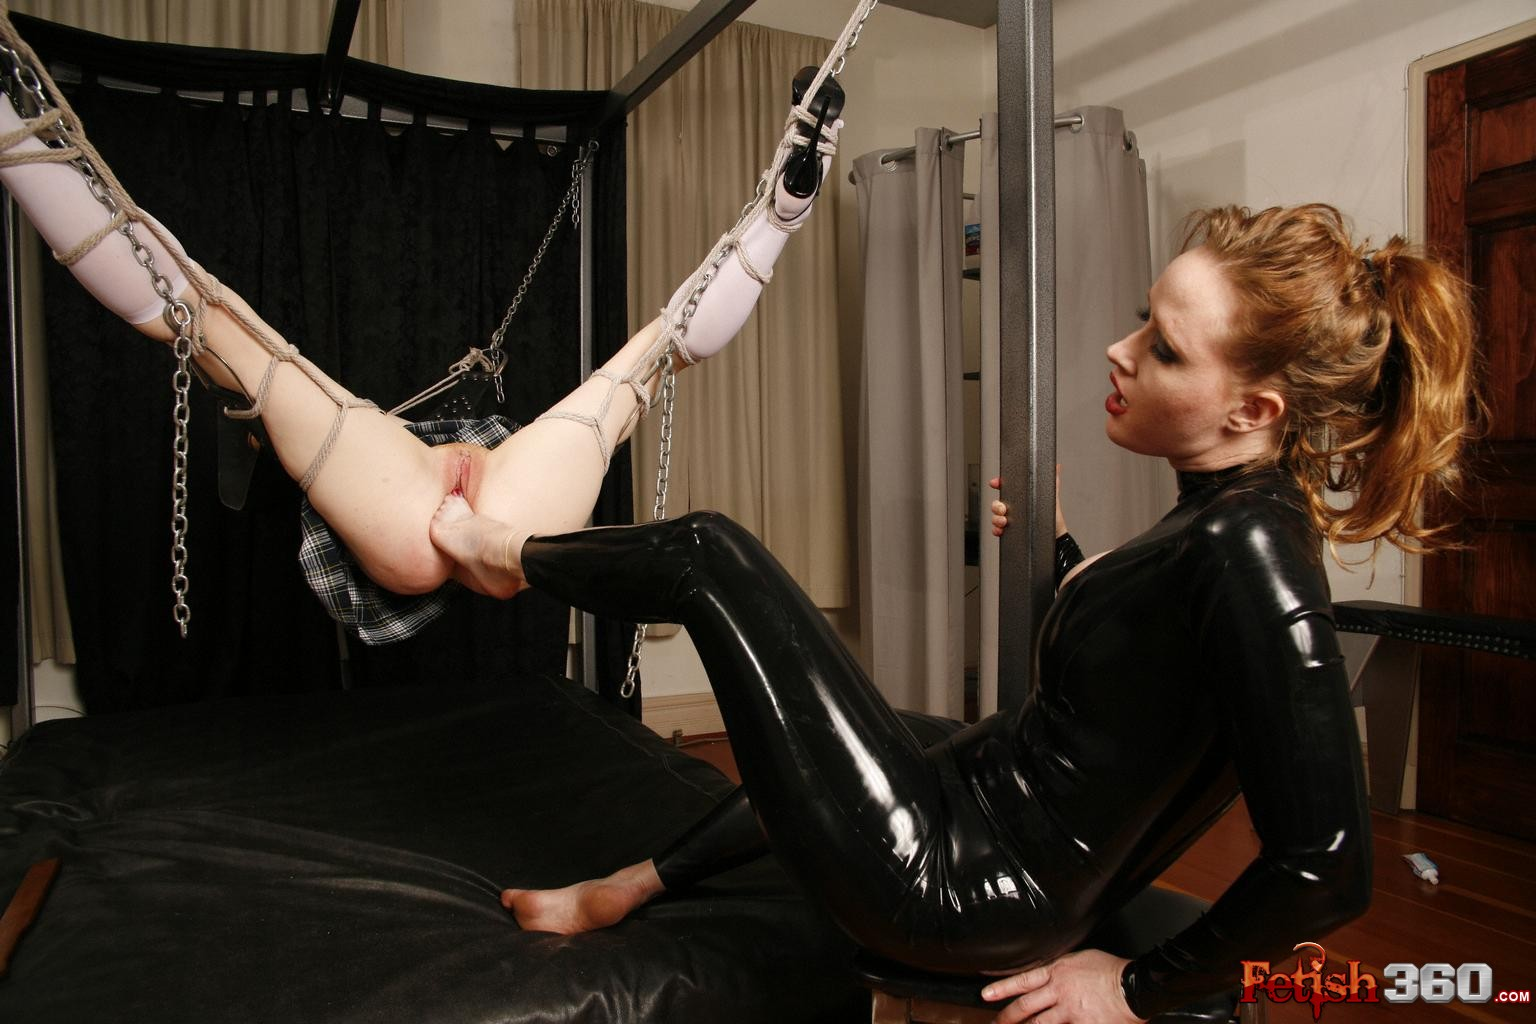 Julie Madison in latex rubber shoving her foot in a slave's pussy while slave is suspended in air